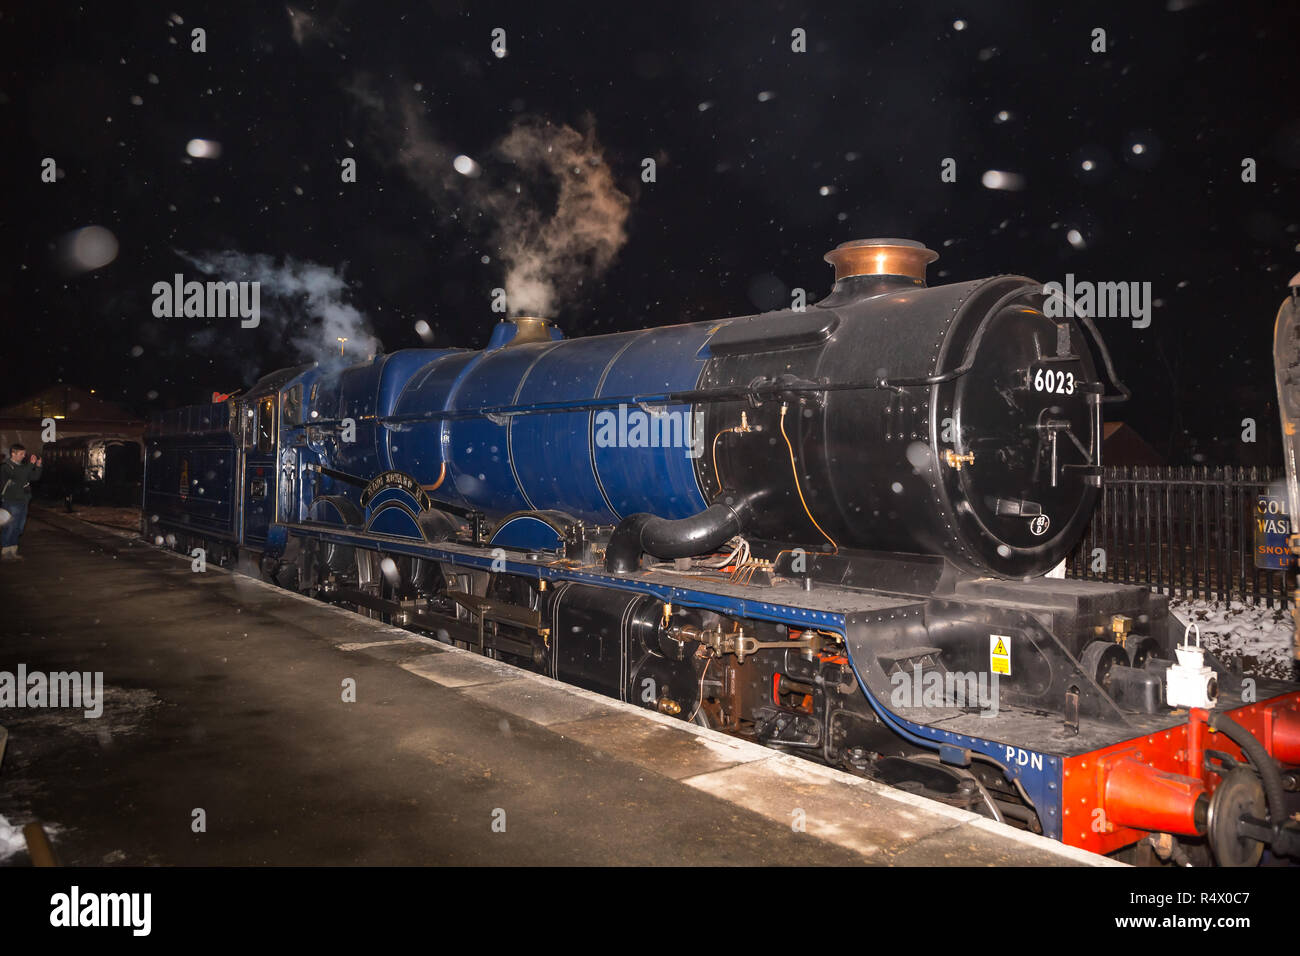 UK steam locomotive King Edward II alongside platform at Kidderminster's SVR station, in the dark, as snow flakes fall in the air -  like Christmas! - Stock Image